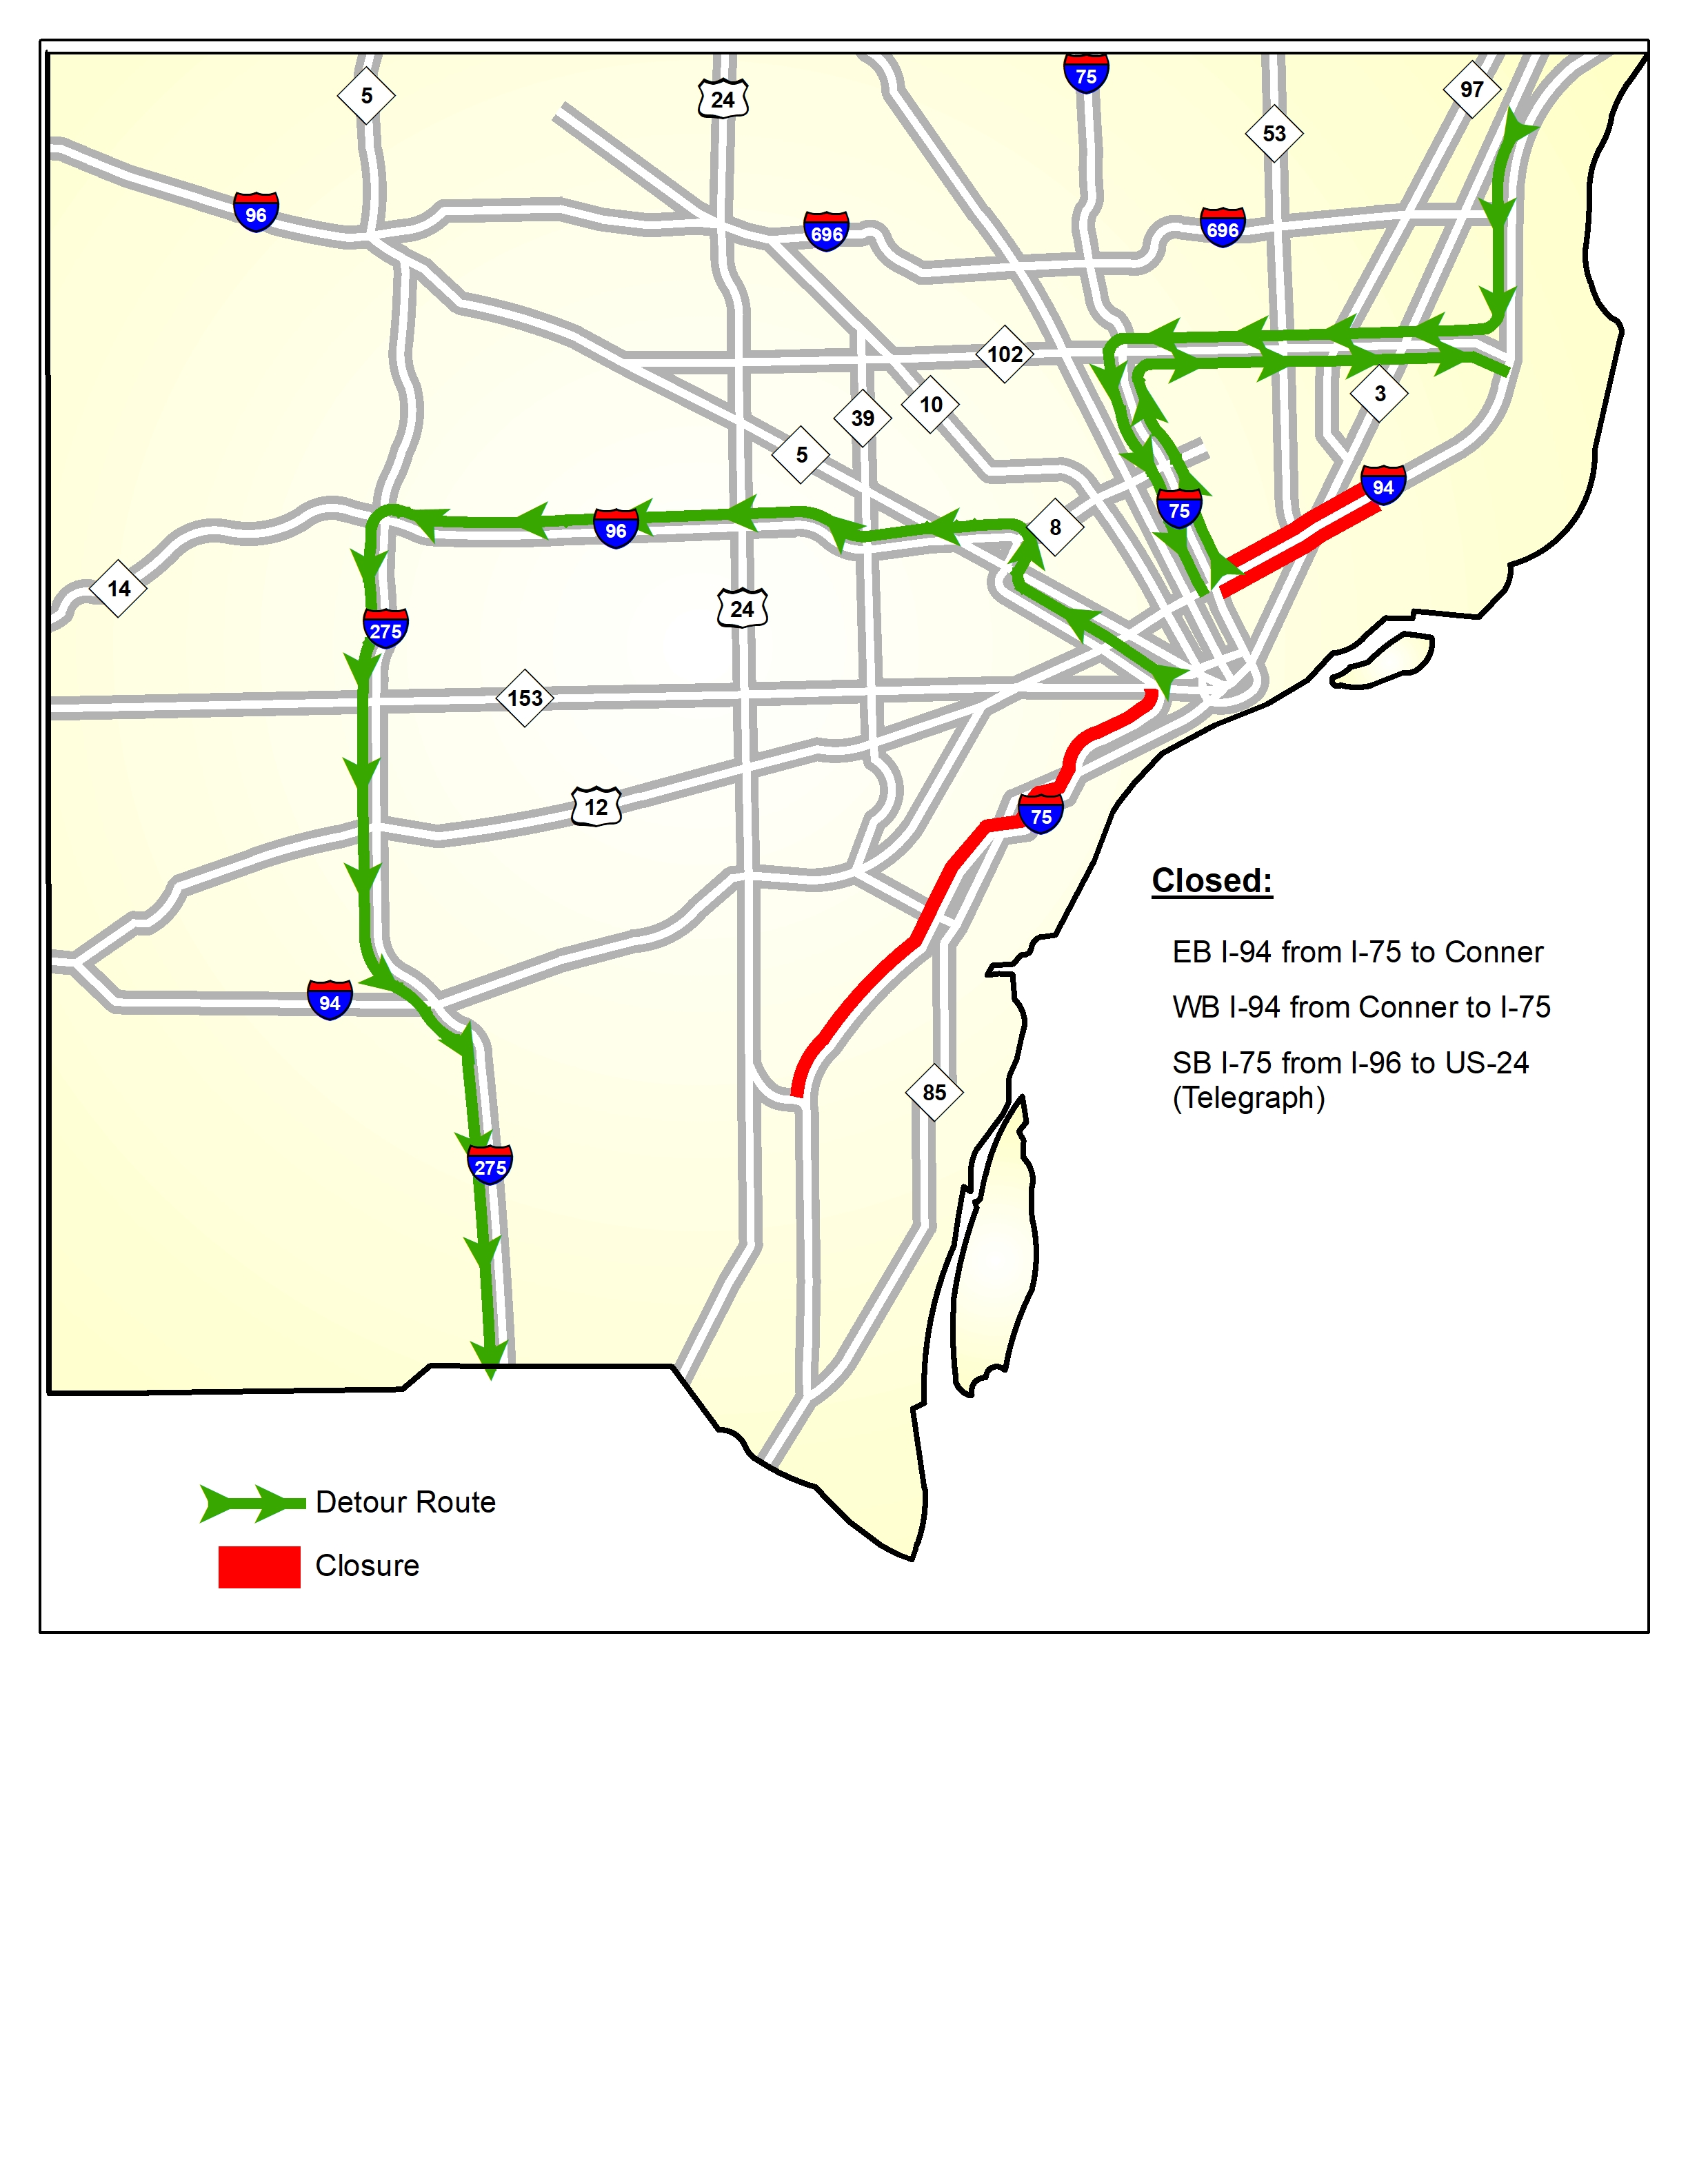 Alternate routes are available for I-94 weekend closure in Detroit on